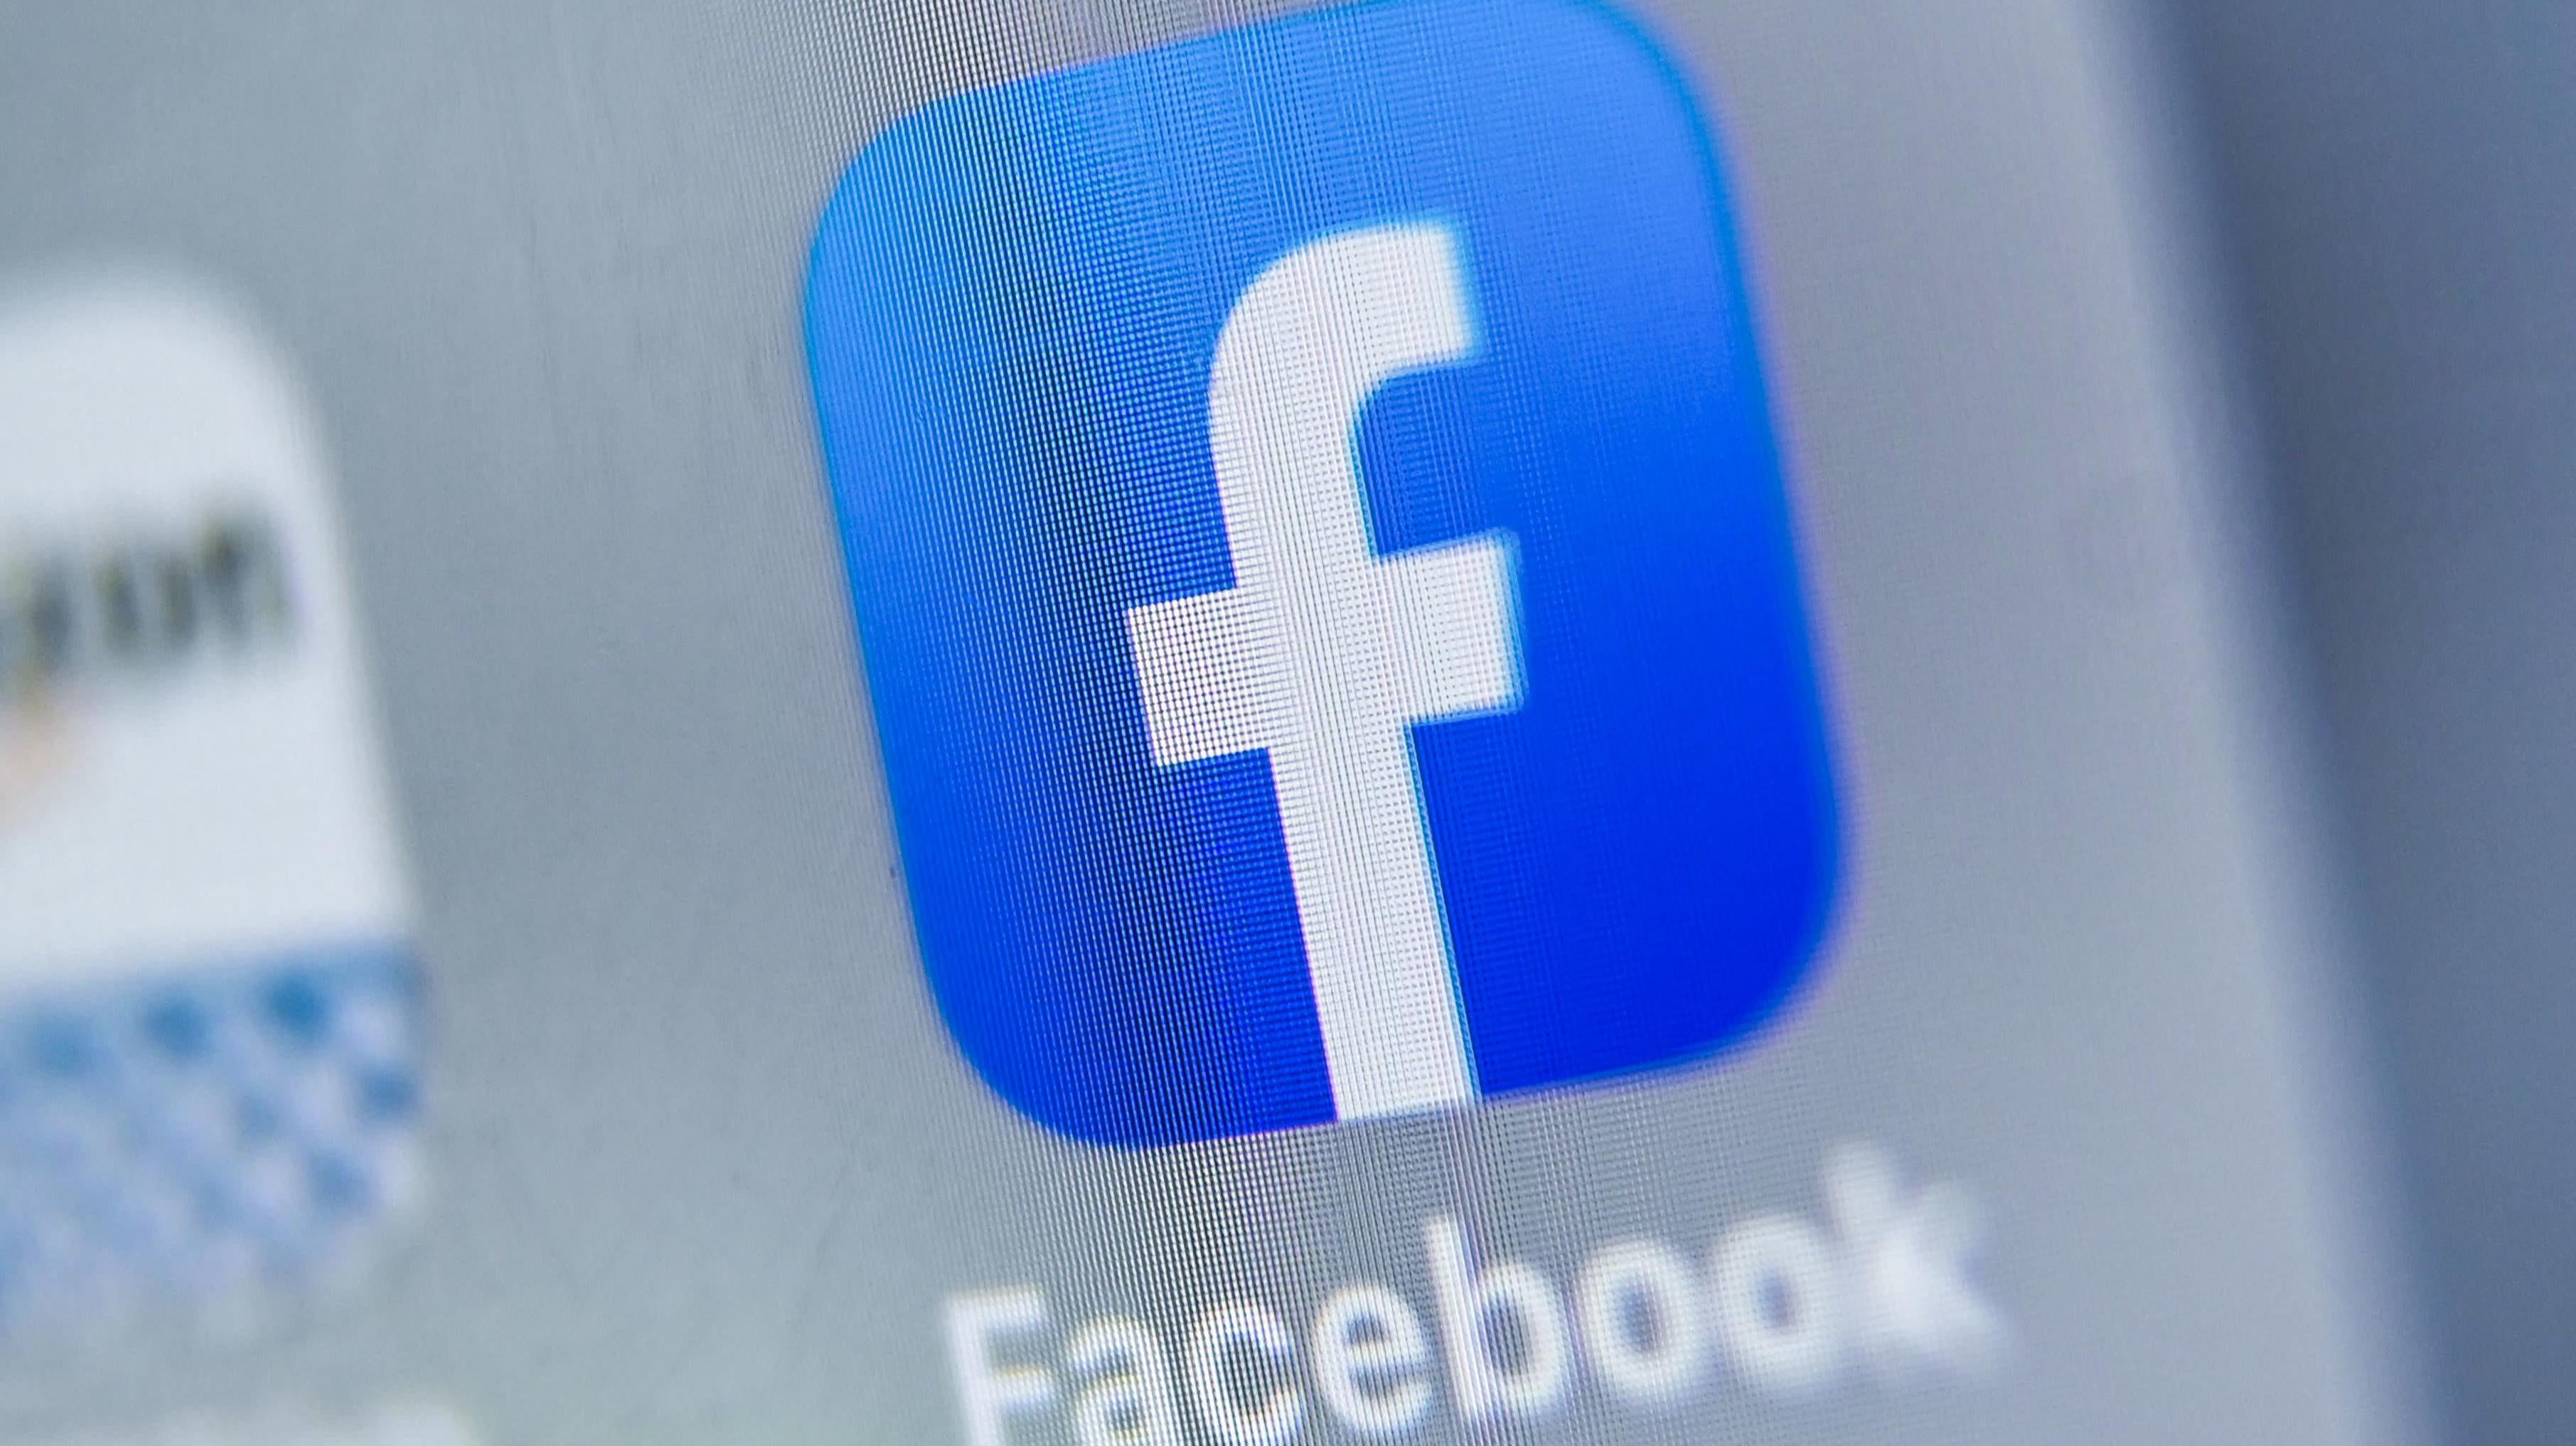 Facebook Takes A Step Into Data Portability With Tool That Sends Photos To Google